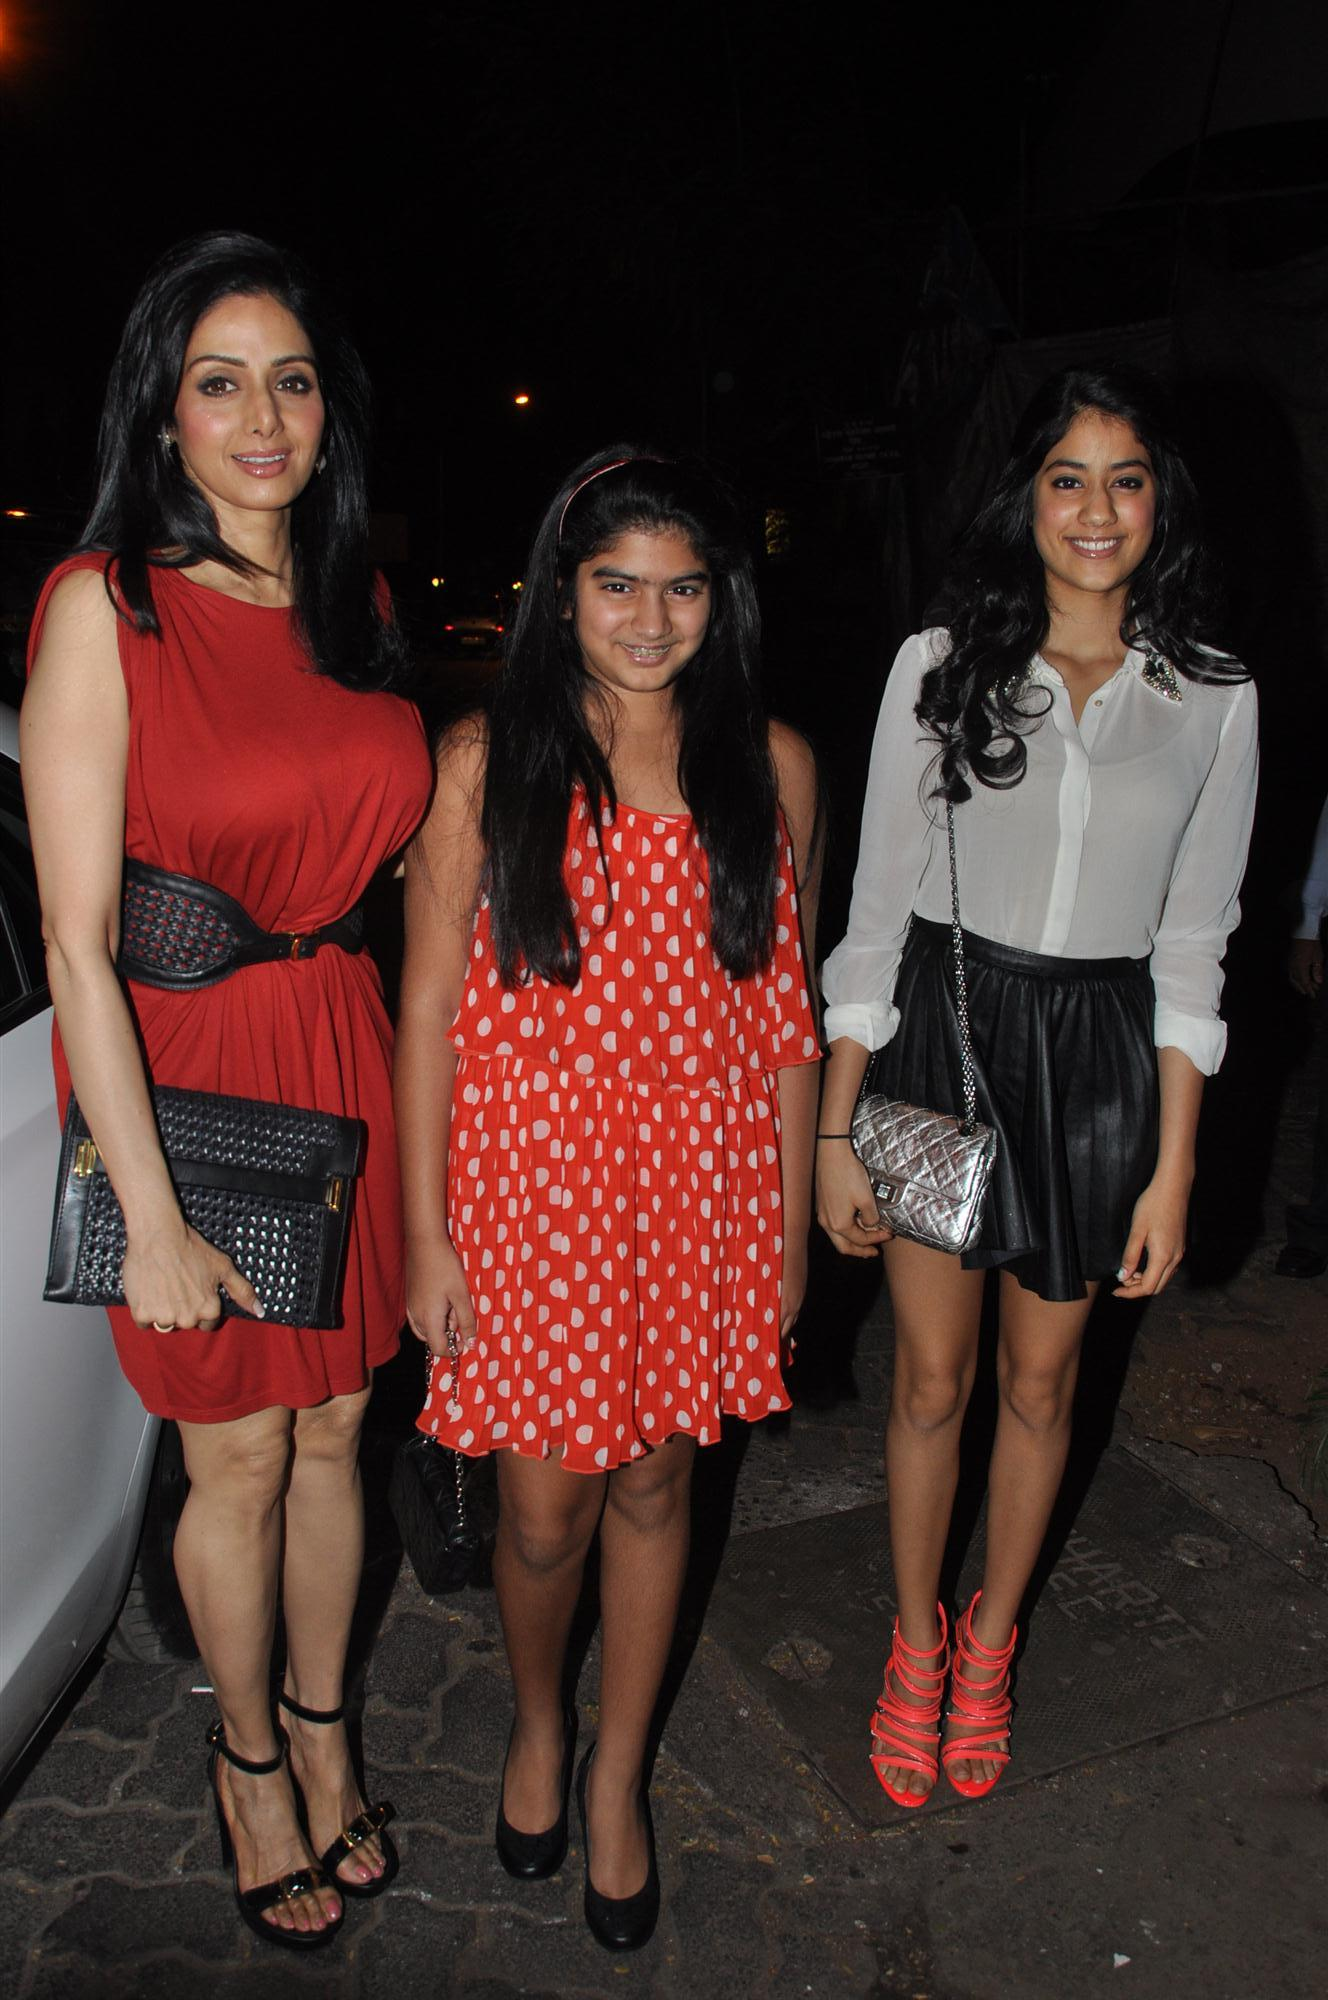 Sex daughters of sridevi